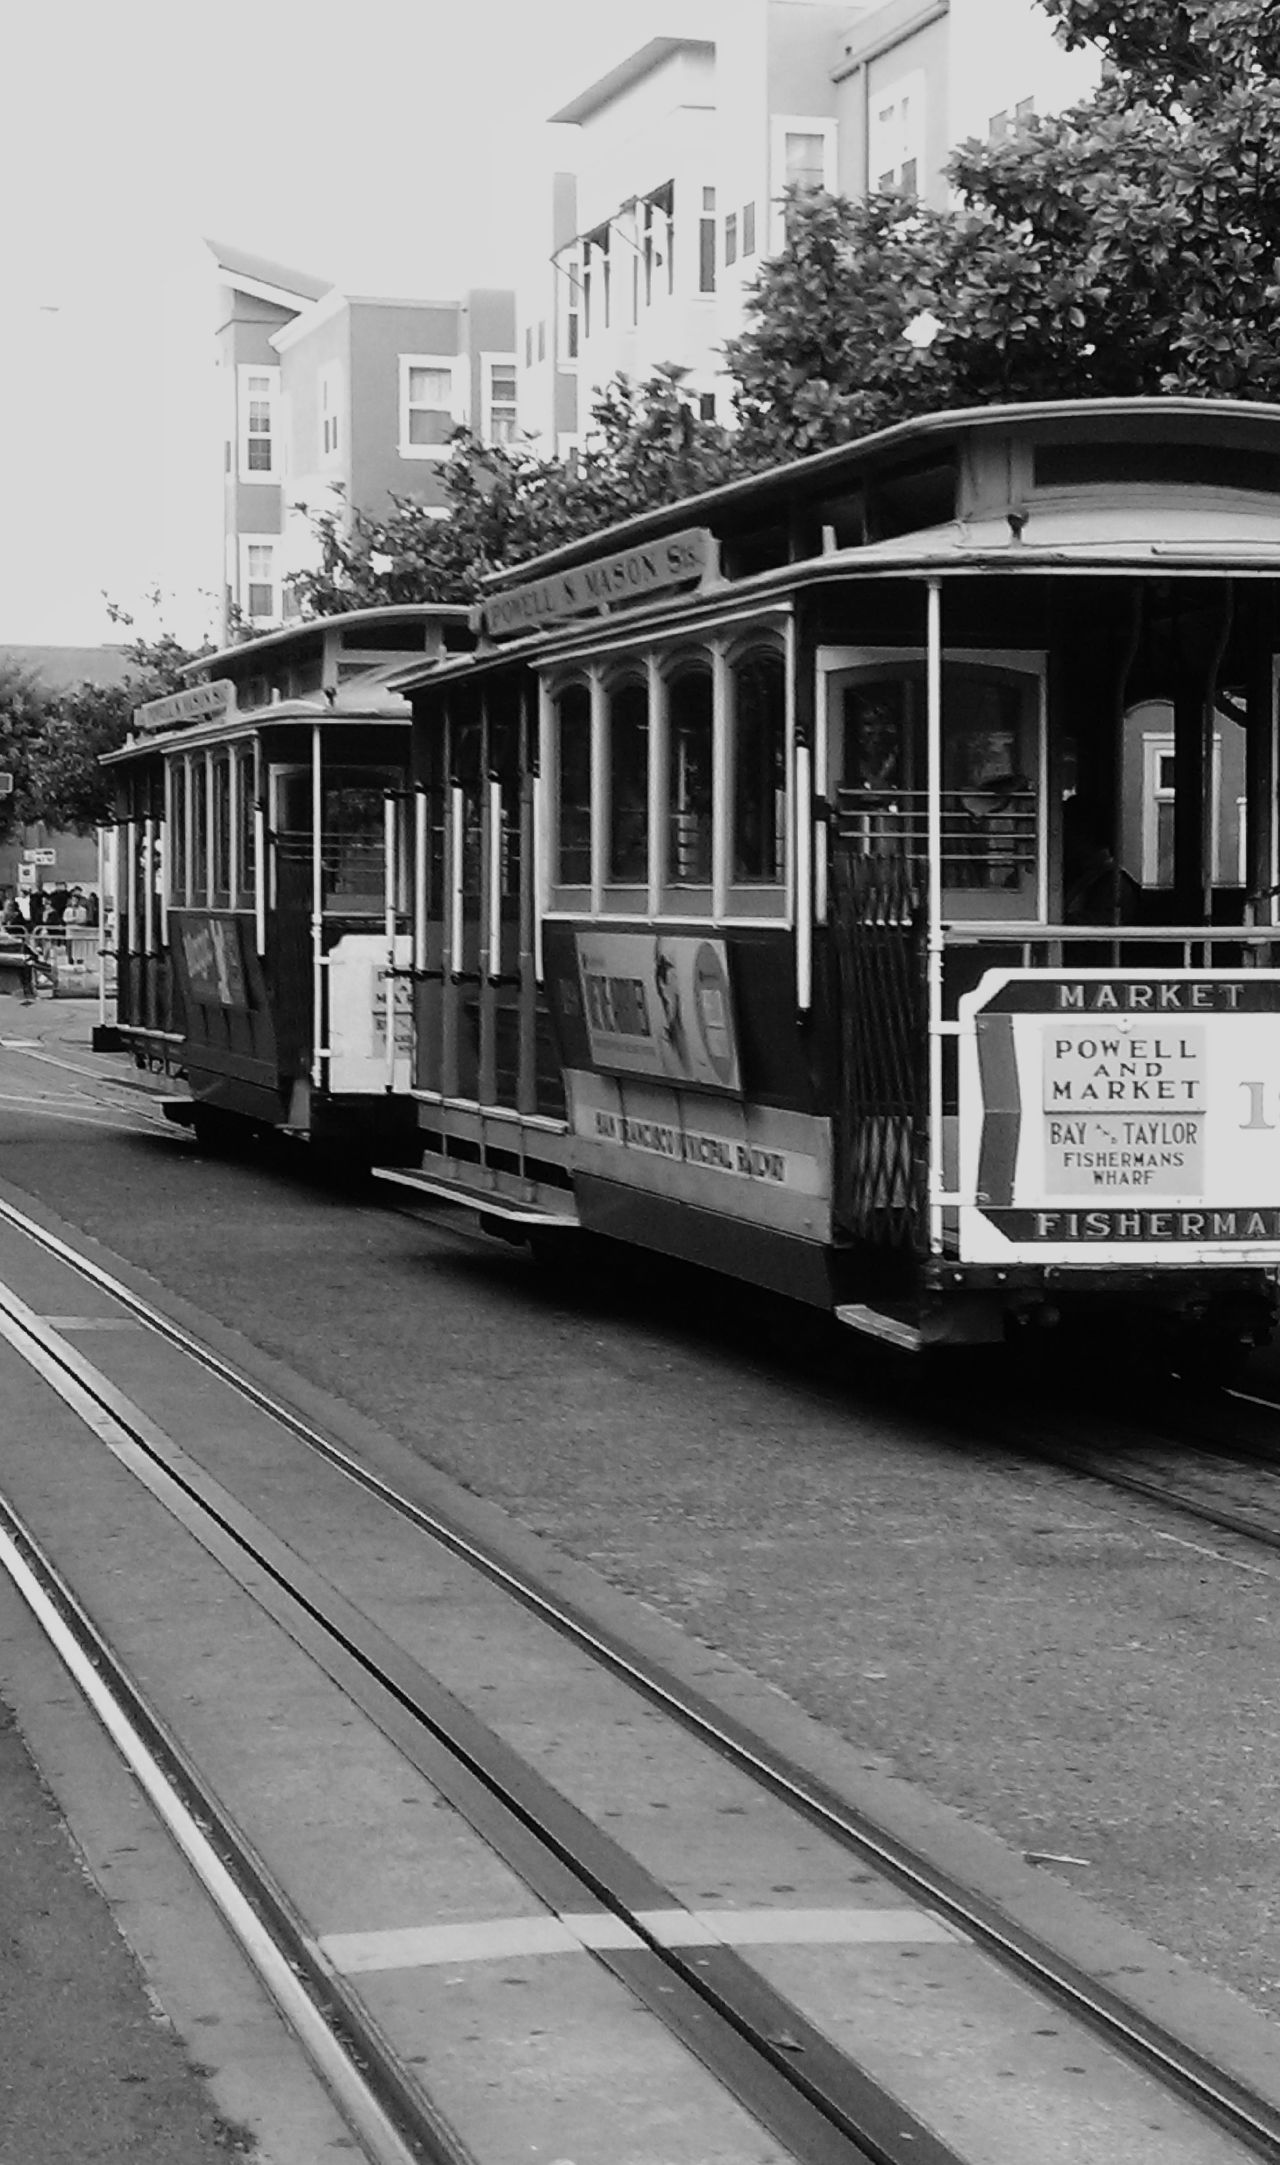 San Francisco City Streets  are bustling as the Trolley goes through the intersection near Fisherman's Wharf Hanging Out Relaxing Taking Photos Travel Photography Road Trip Best Of EyeEm Eye4photography  Original Photography Mobile Photography Monochrome Blackandwhite Photography Urban Lifestyle Urbanphotography California Dreaming Taking Photos Choatephotos Choatgrapy The City Light The City Light The Street Photographer - 2017 EyeEm Awards